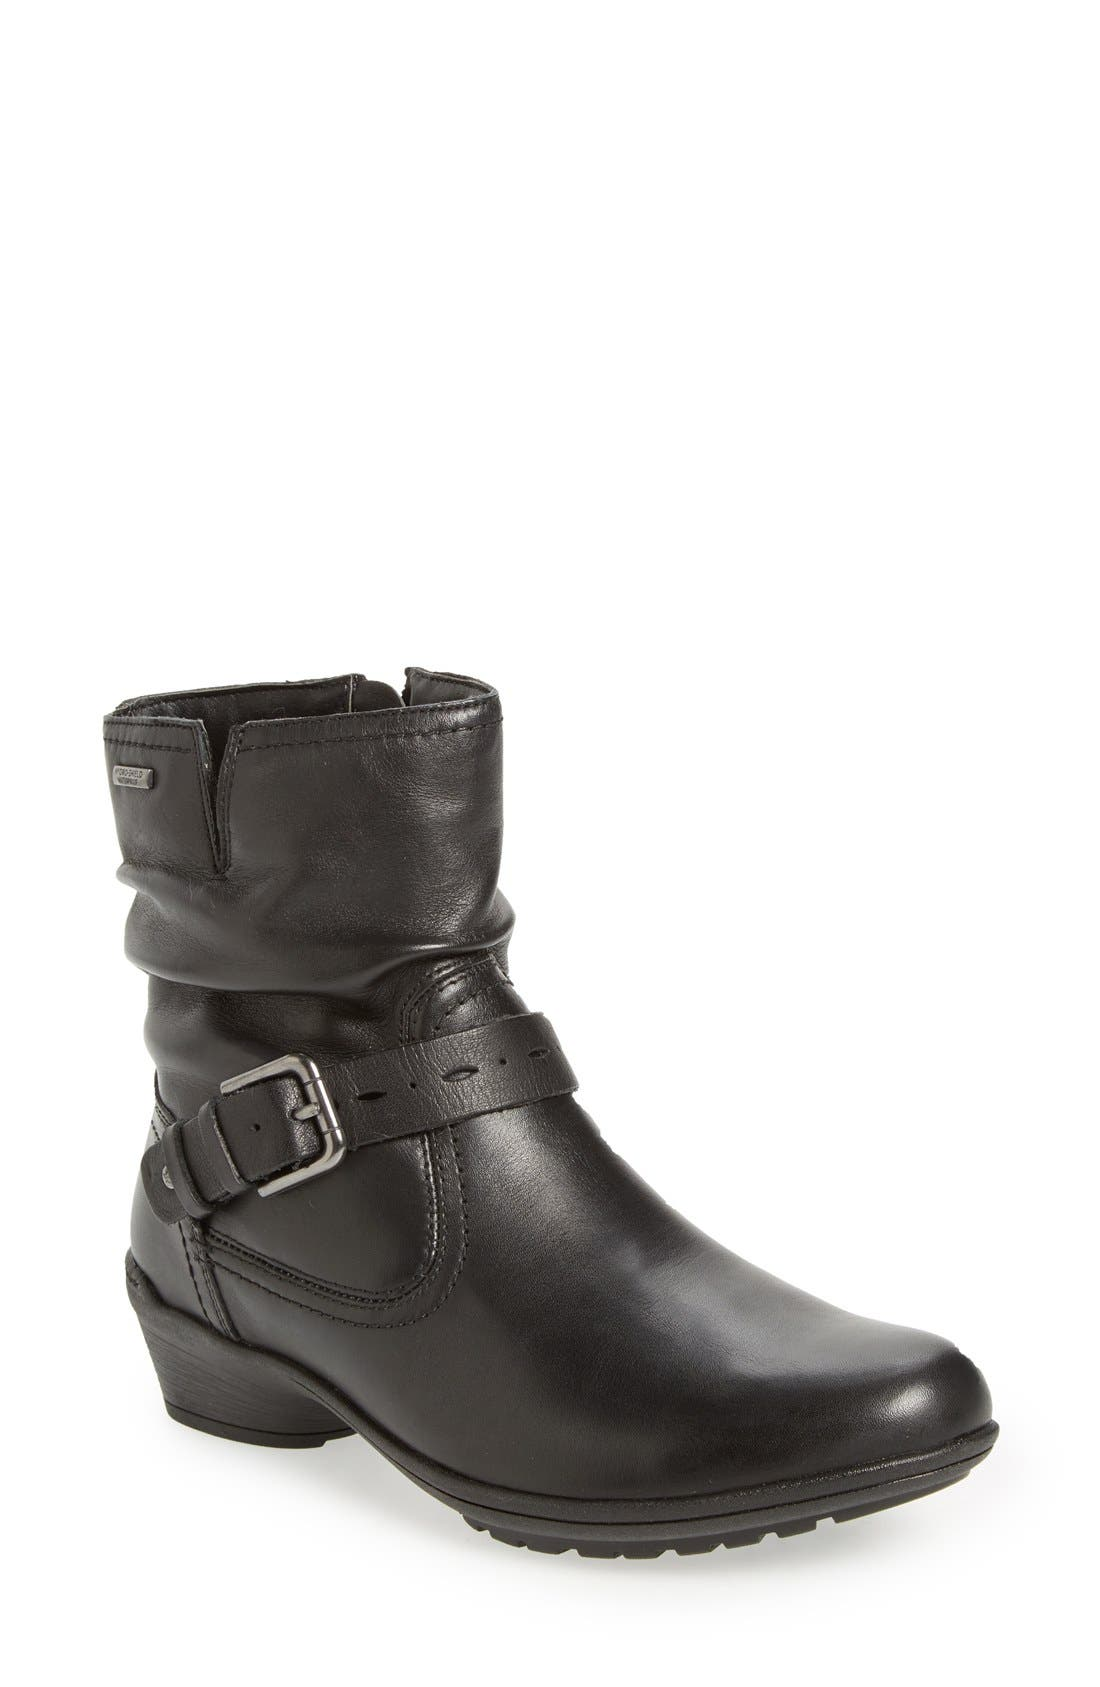 Rockport Cobb Hill 'Riley' Waterproof Buckle Strap Bootie (Women)